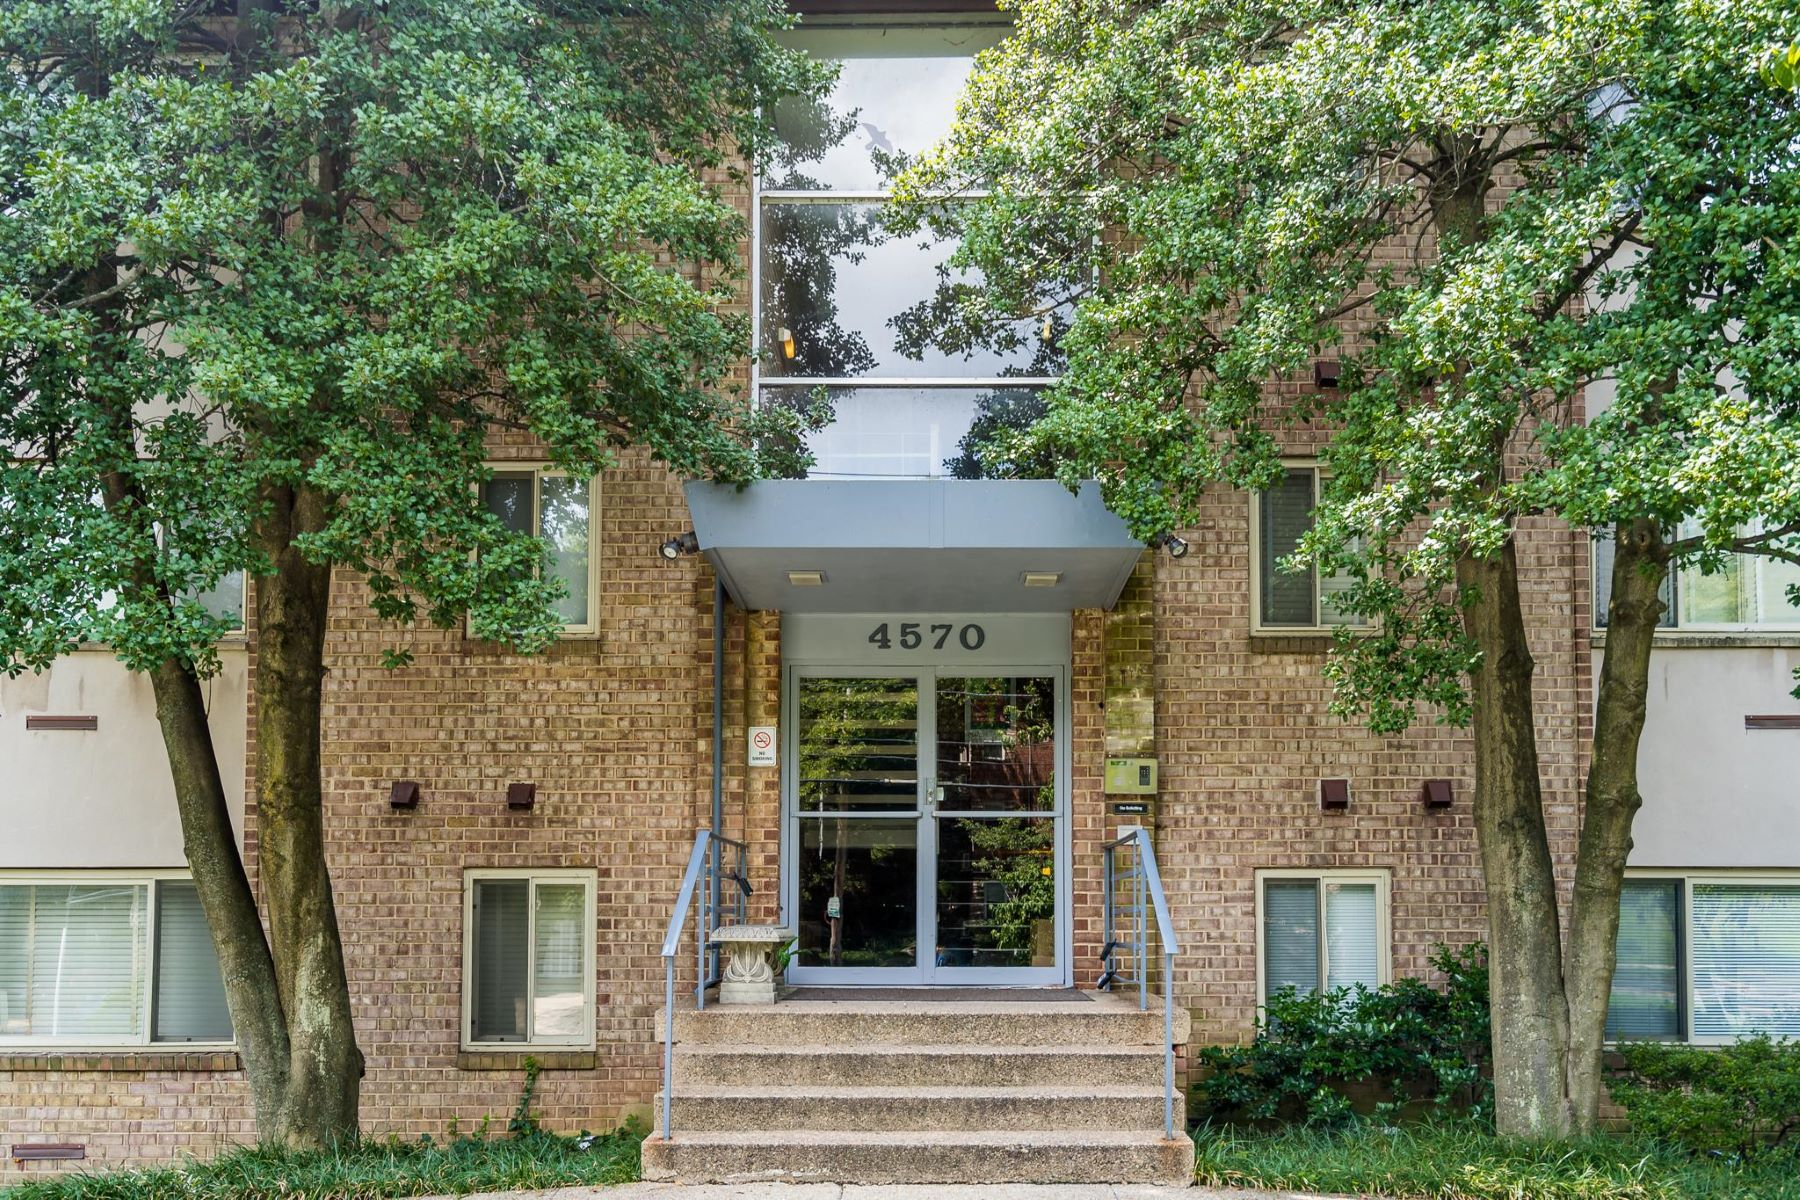 Other Residential for Sale at 4570 Macarthur Blvd NW #t2 4570 Macarthur Blvd NW #t2 Washington, District Of Columbia 20007 United States